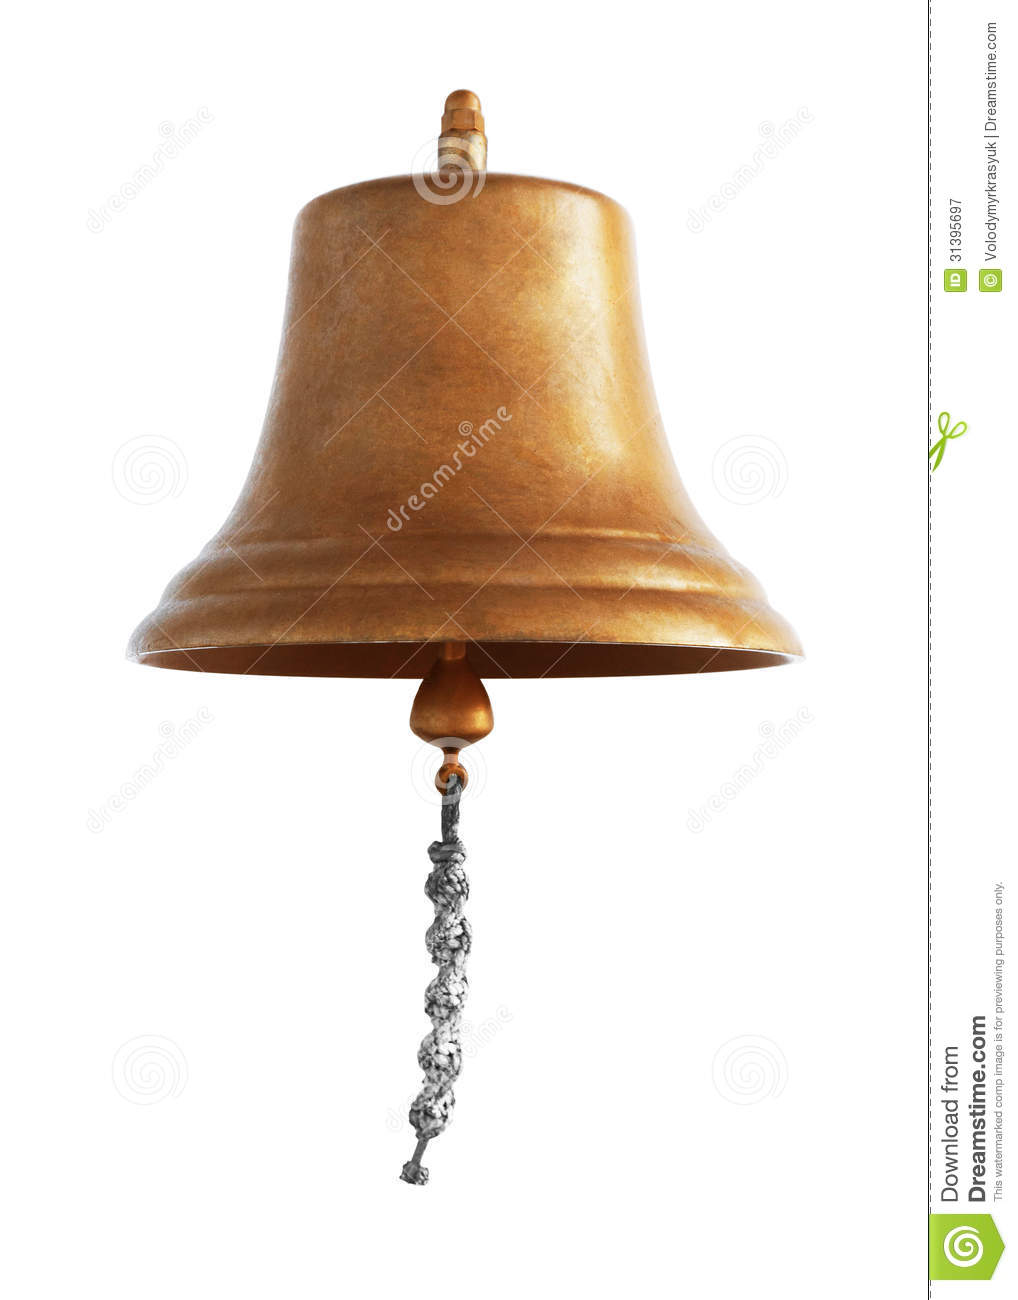 Antique Brass Ship's Bell Royalty Free Stock Photography.